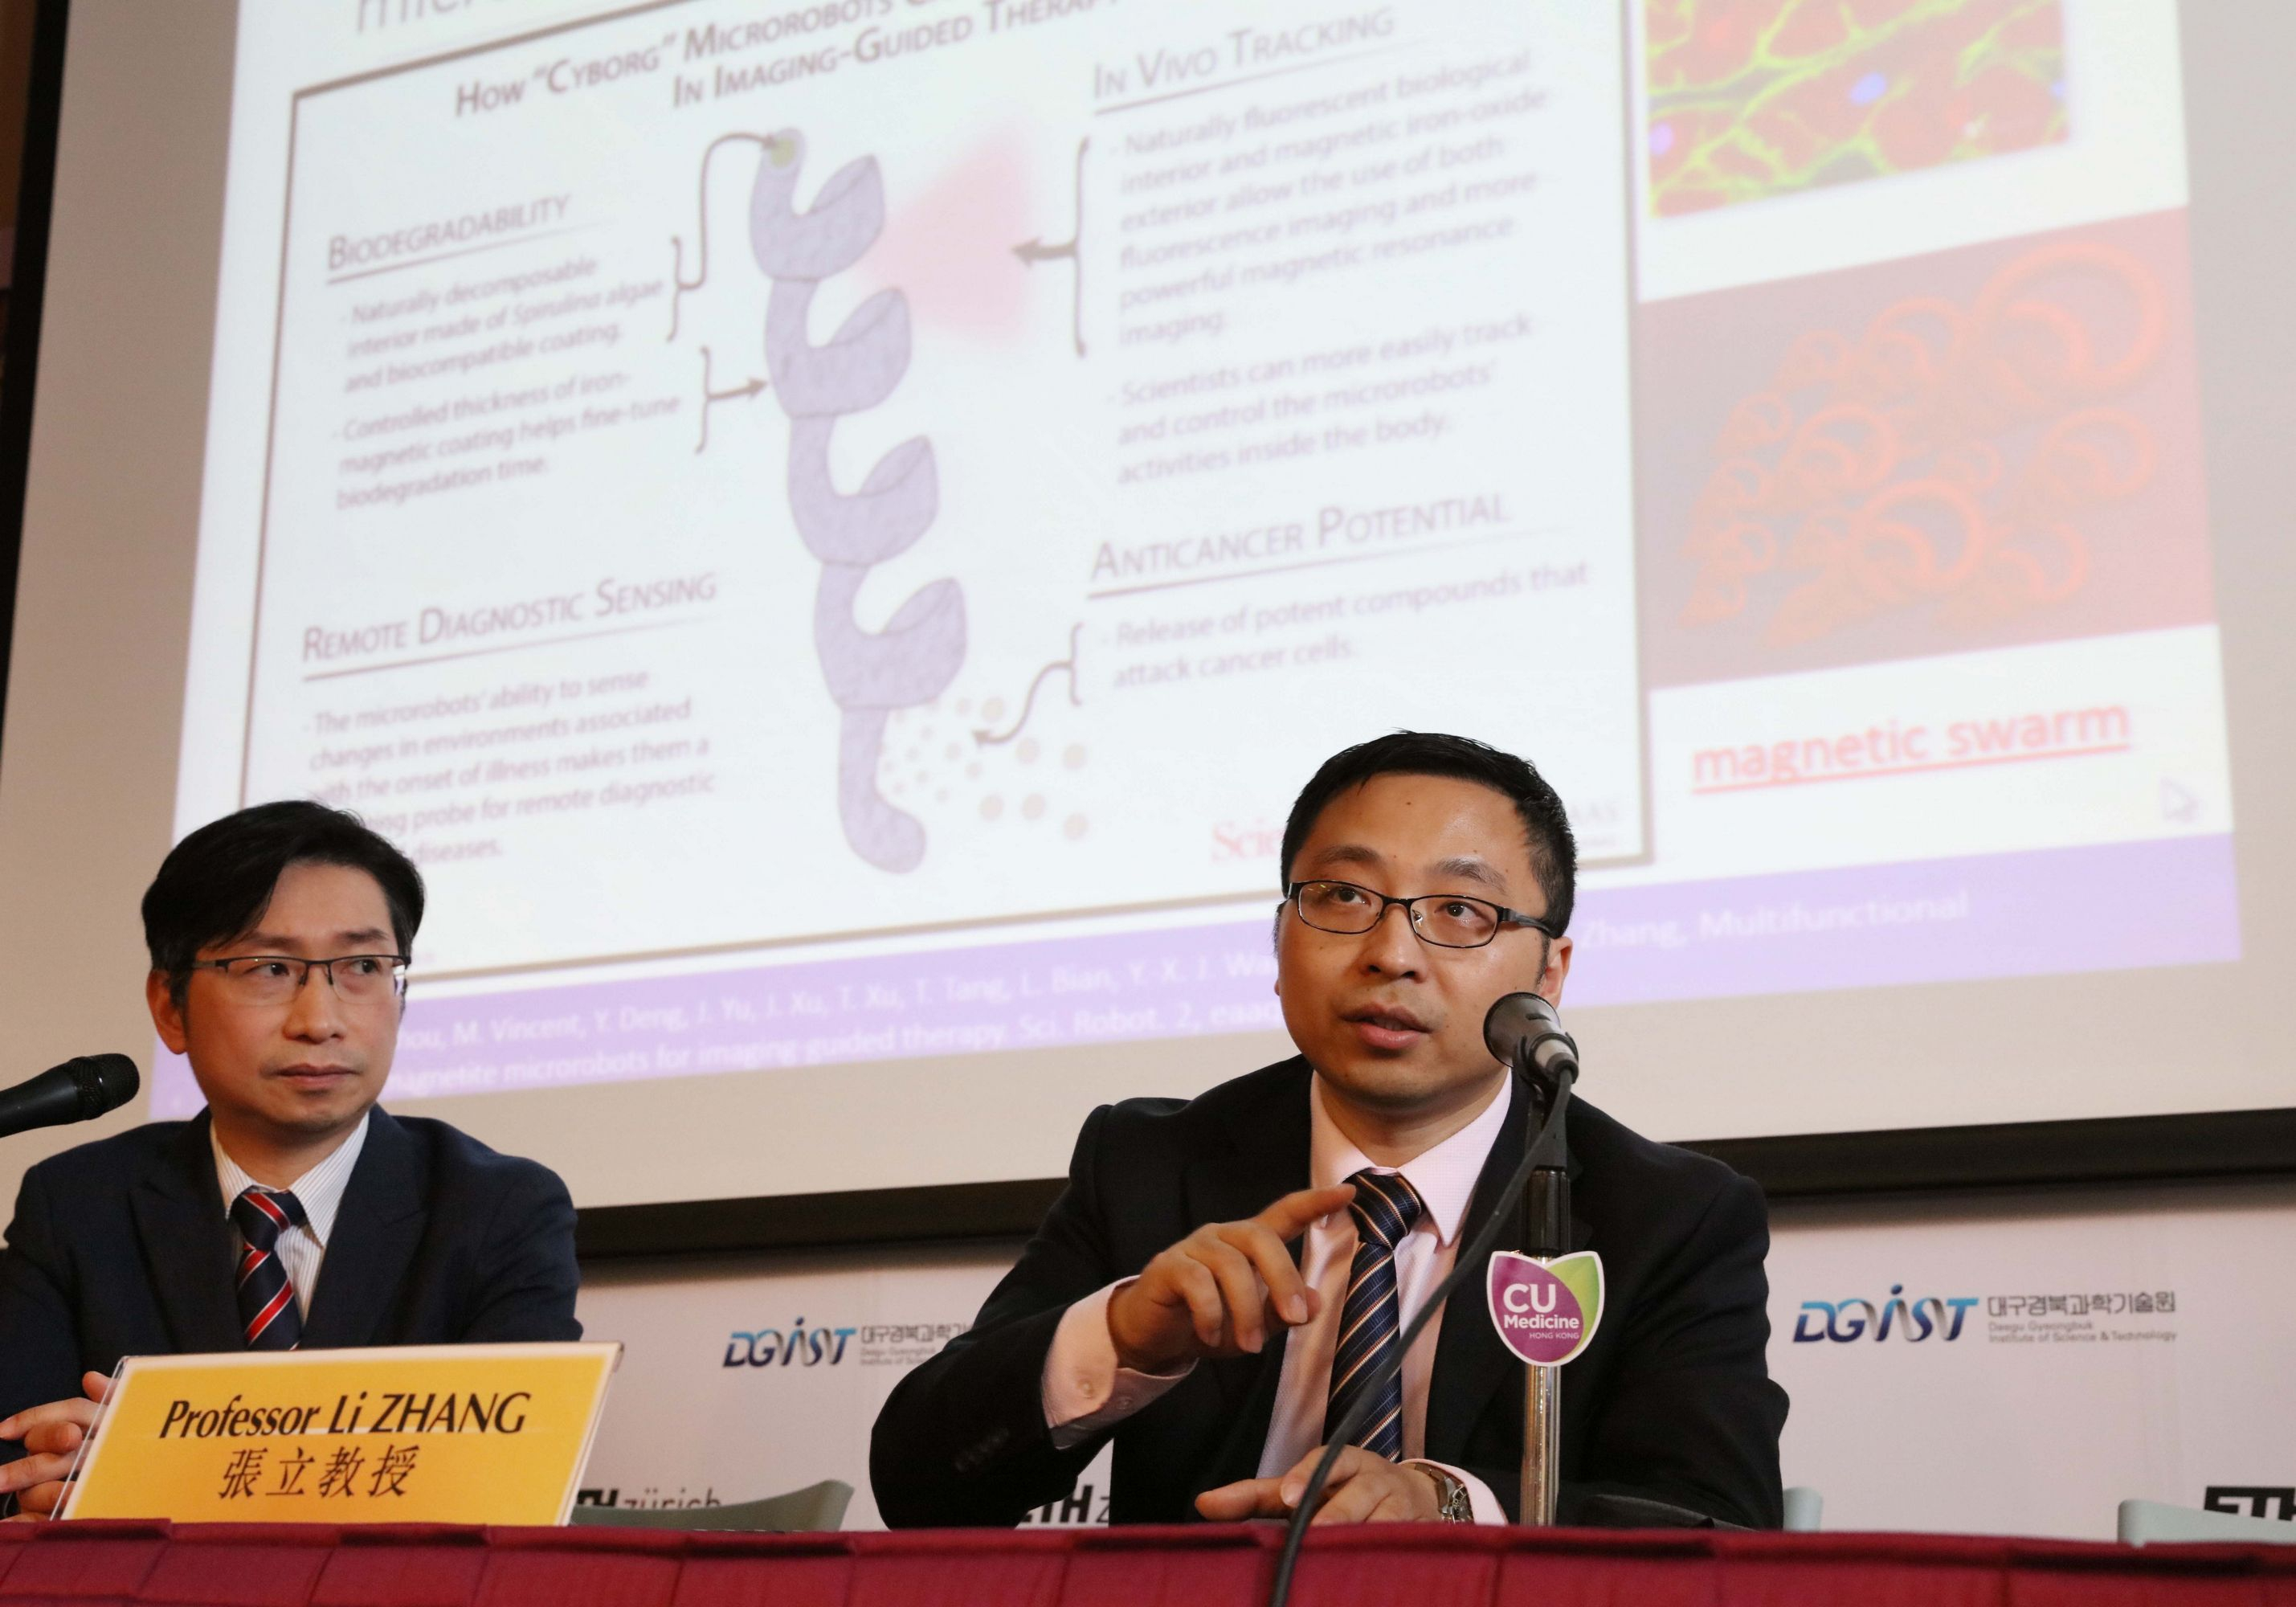 Prof. Li ZHANG (right), Associate Professor, Department of Mechanical and Automation Engineering, CUHK says in combination with endoscopy, microbots can help enhance the imaging contrast, direct drug delivery and provide localized therapy with high precision in vivo